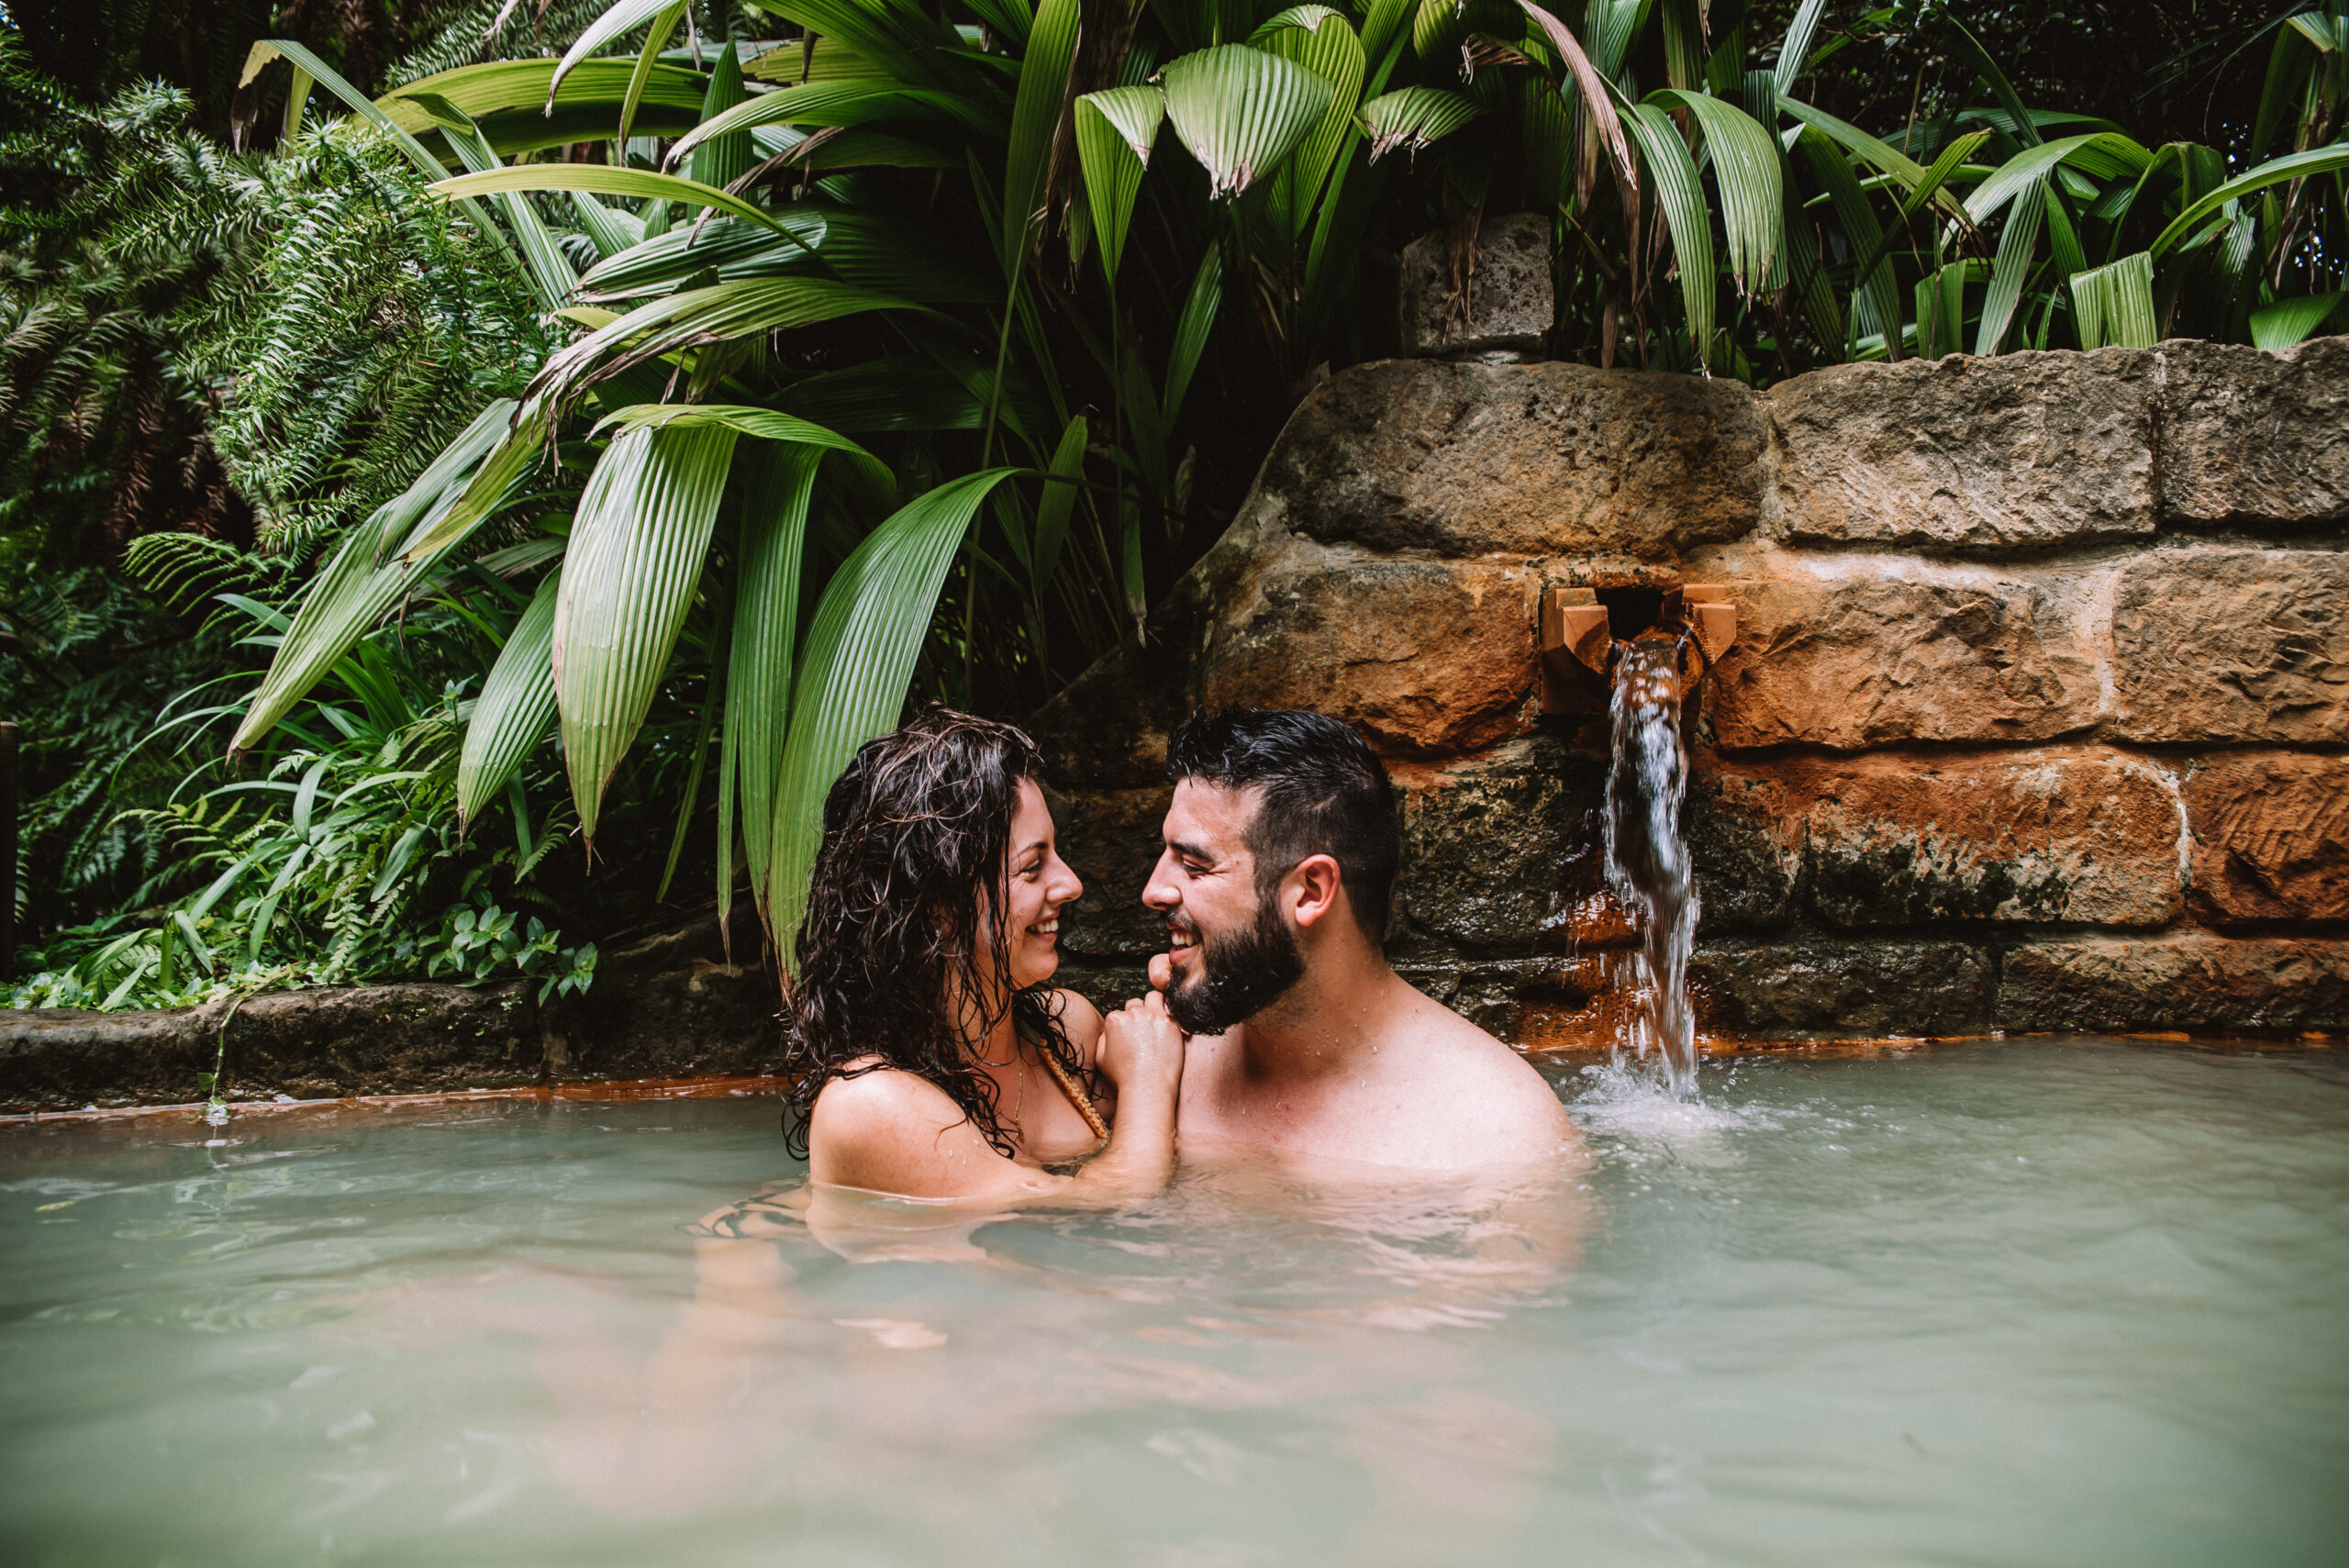 Jacuzzi Parque Terra Nostra – Love Is In The Air